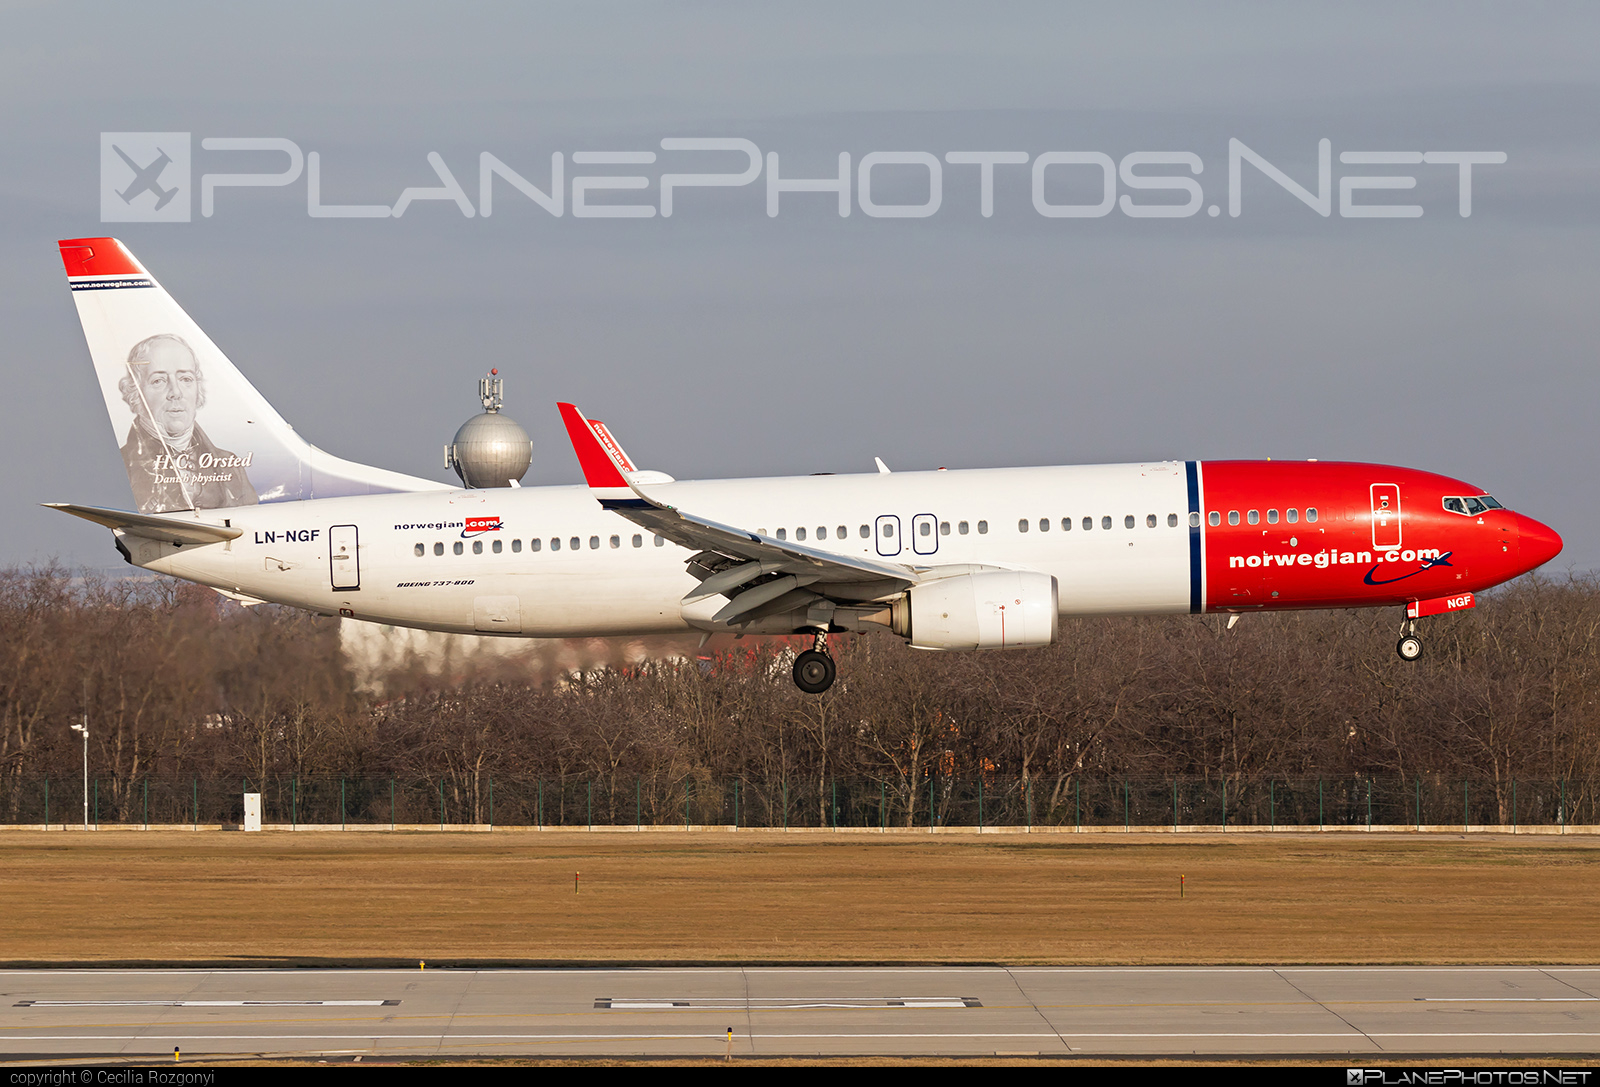 Boeing 737-800 - LN-NGF operated by Norwegian Air Shuttle #b737 #b737nextgen #b737ng #boeing #boeing737 #norwegian #norwegianair #norwegianairshuttle